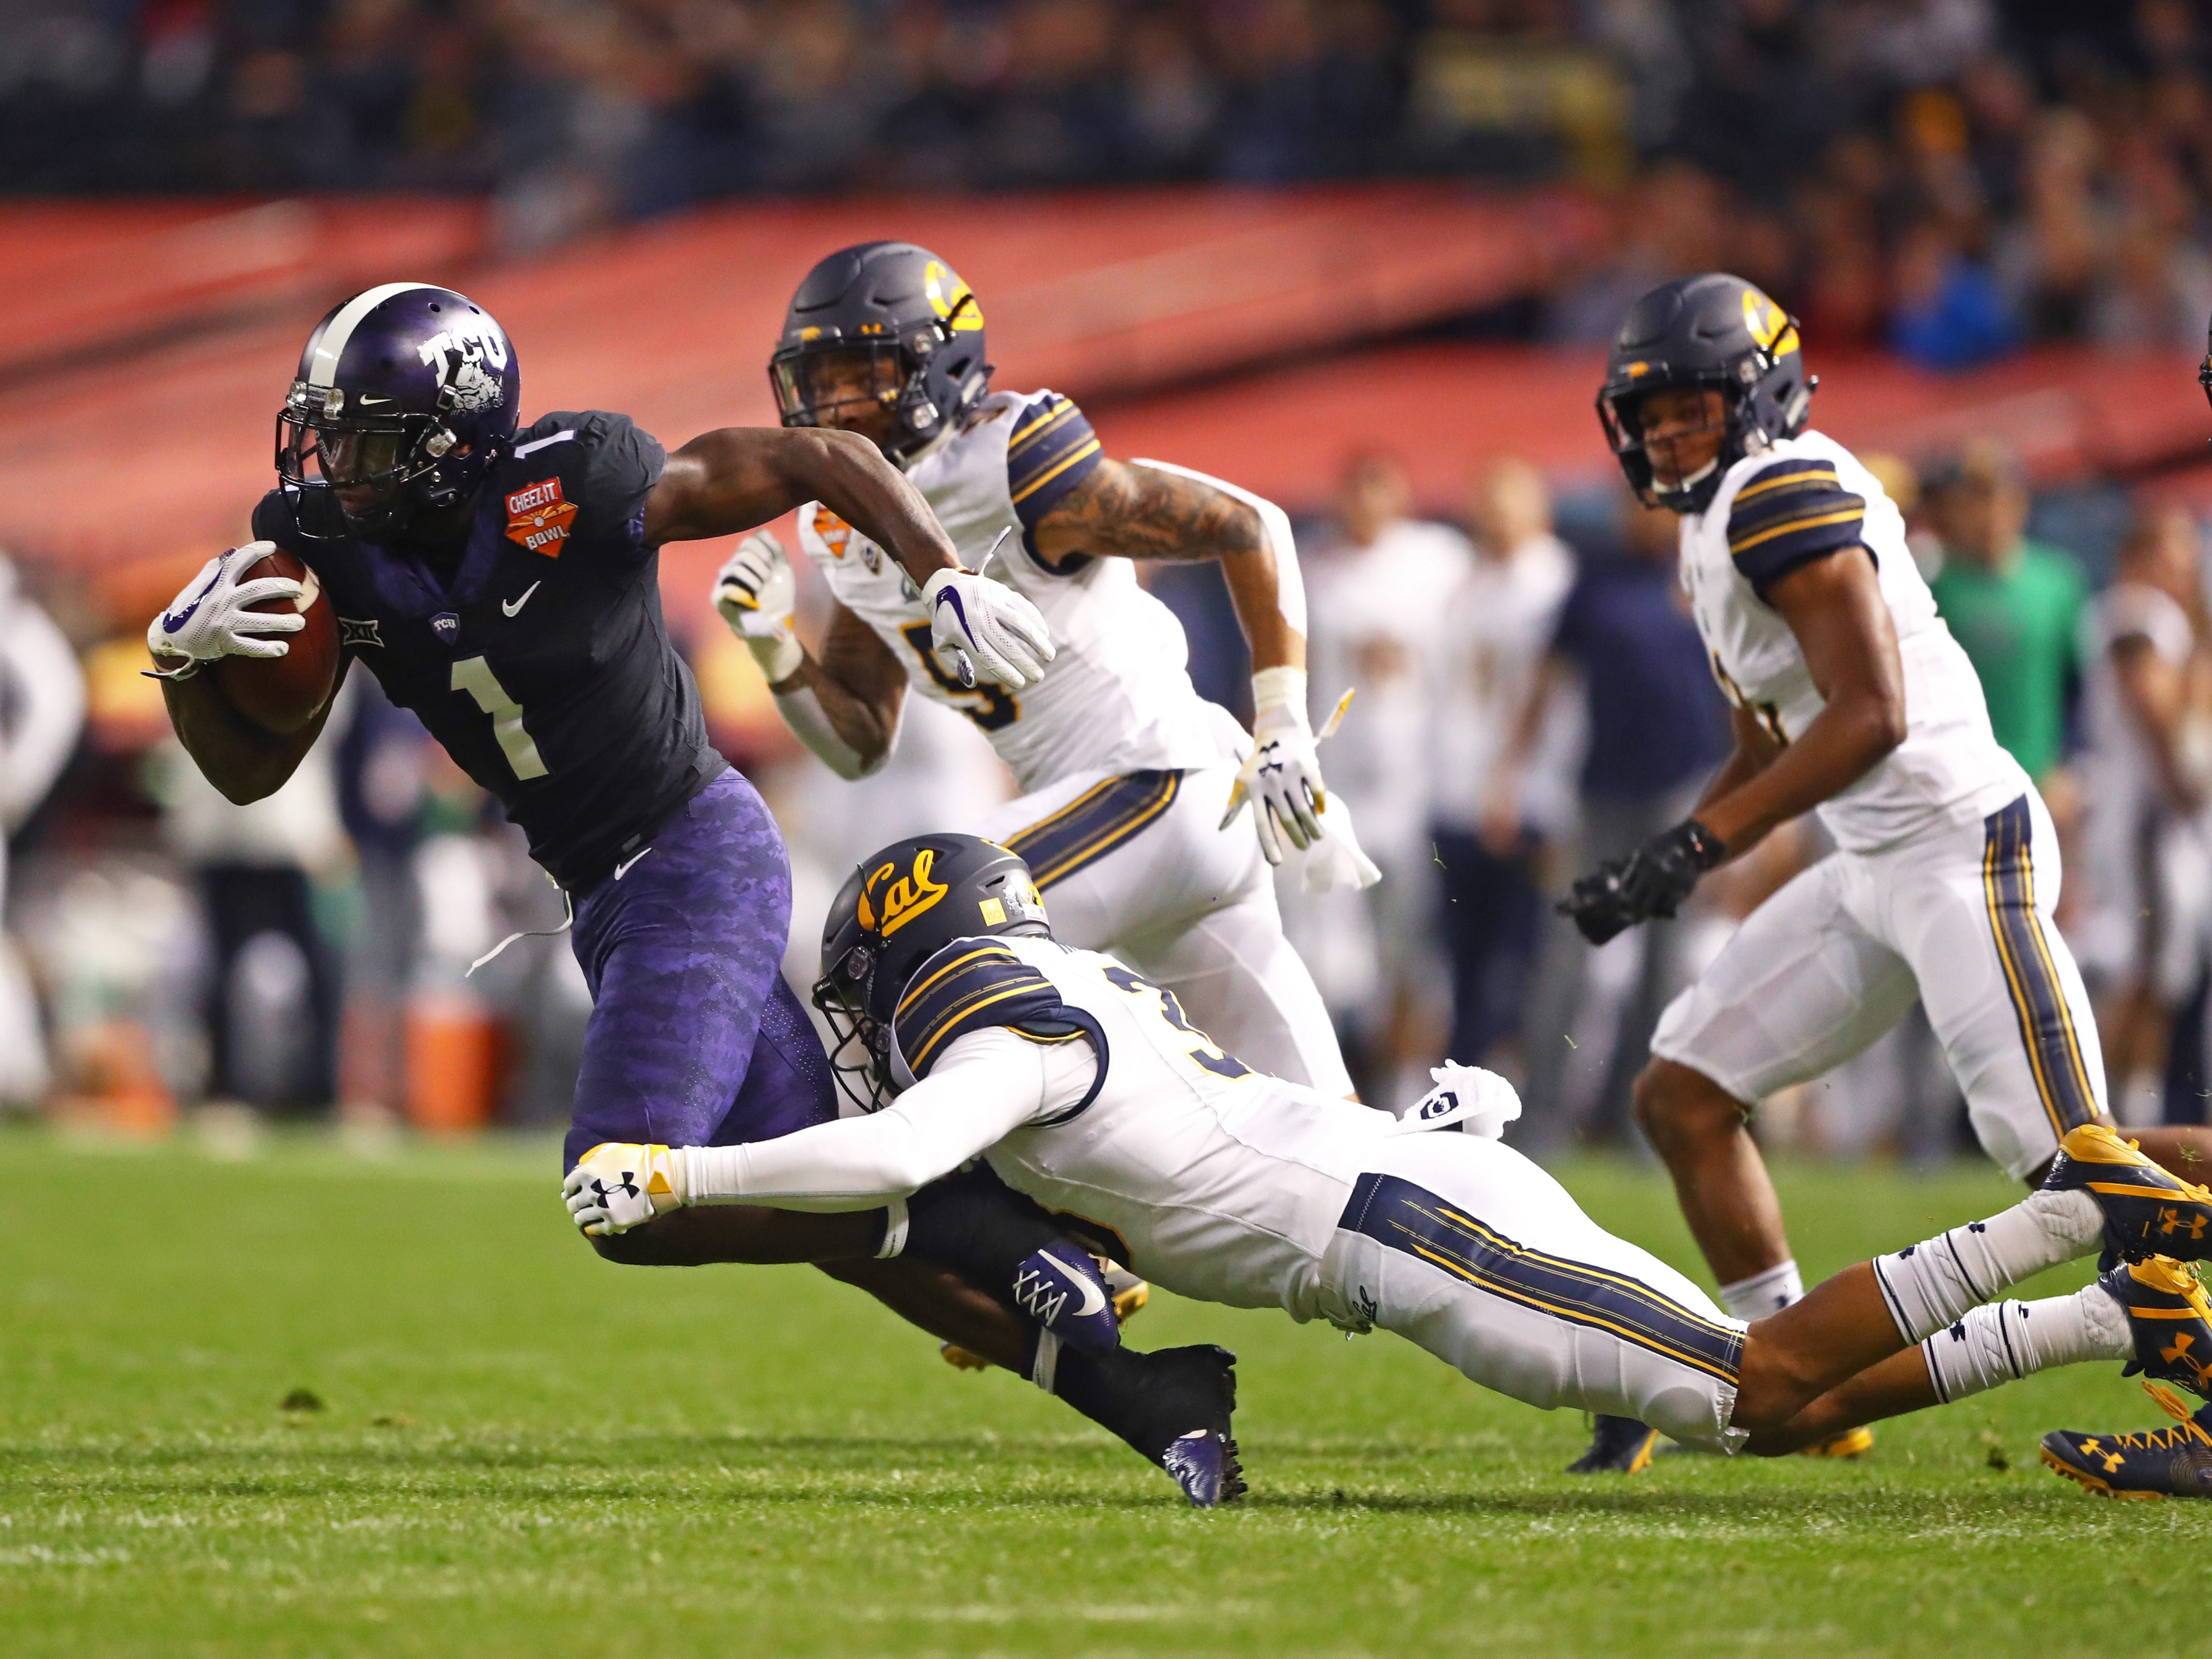 Dec 26, 2018; Phoenix, AZ, USA; Texas Christian Horned Frogs wide receiver Jalen Reagor (1) is tackled by California Golden Bears linebacker Matt Horwitz (38) in the first half of the 2018 Cheez-It Bowl at Chase Field.